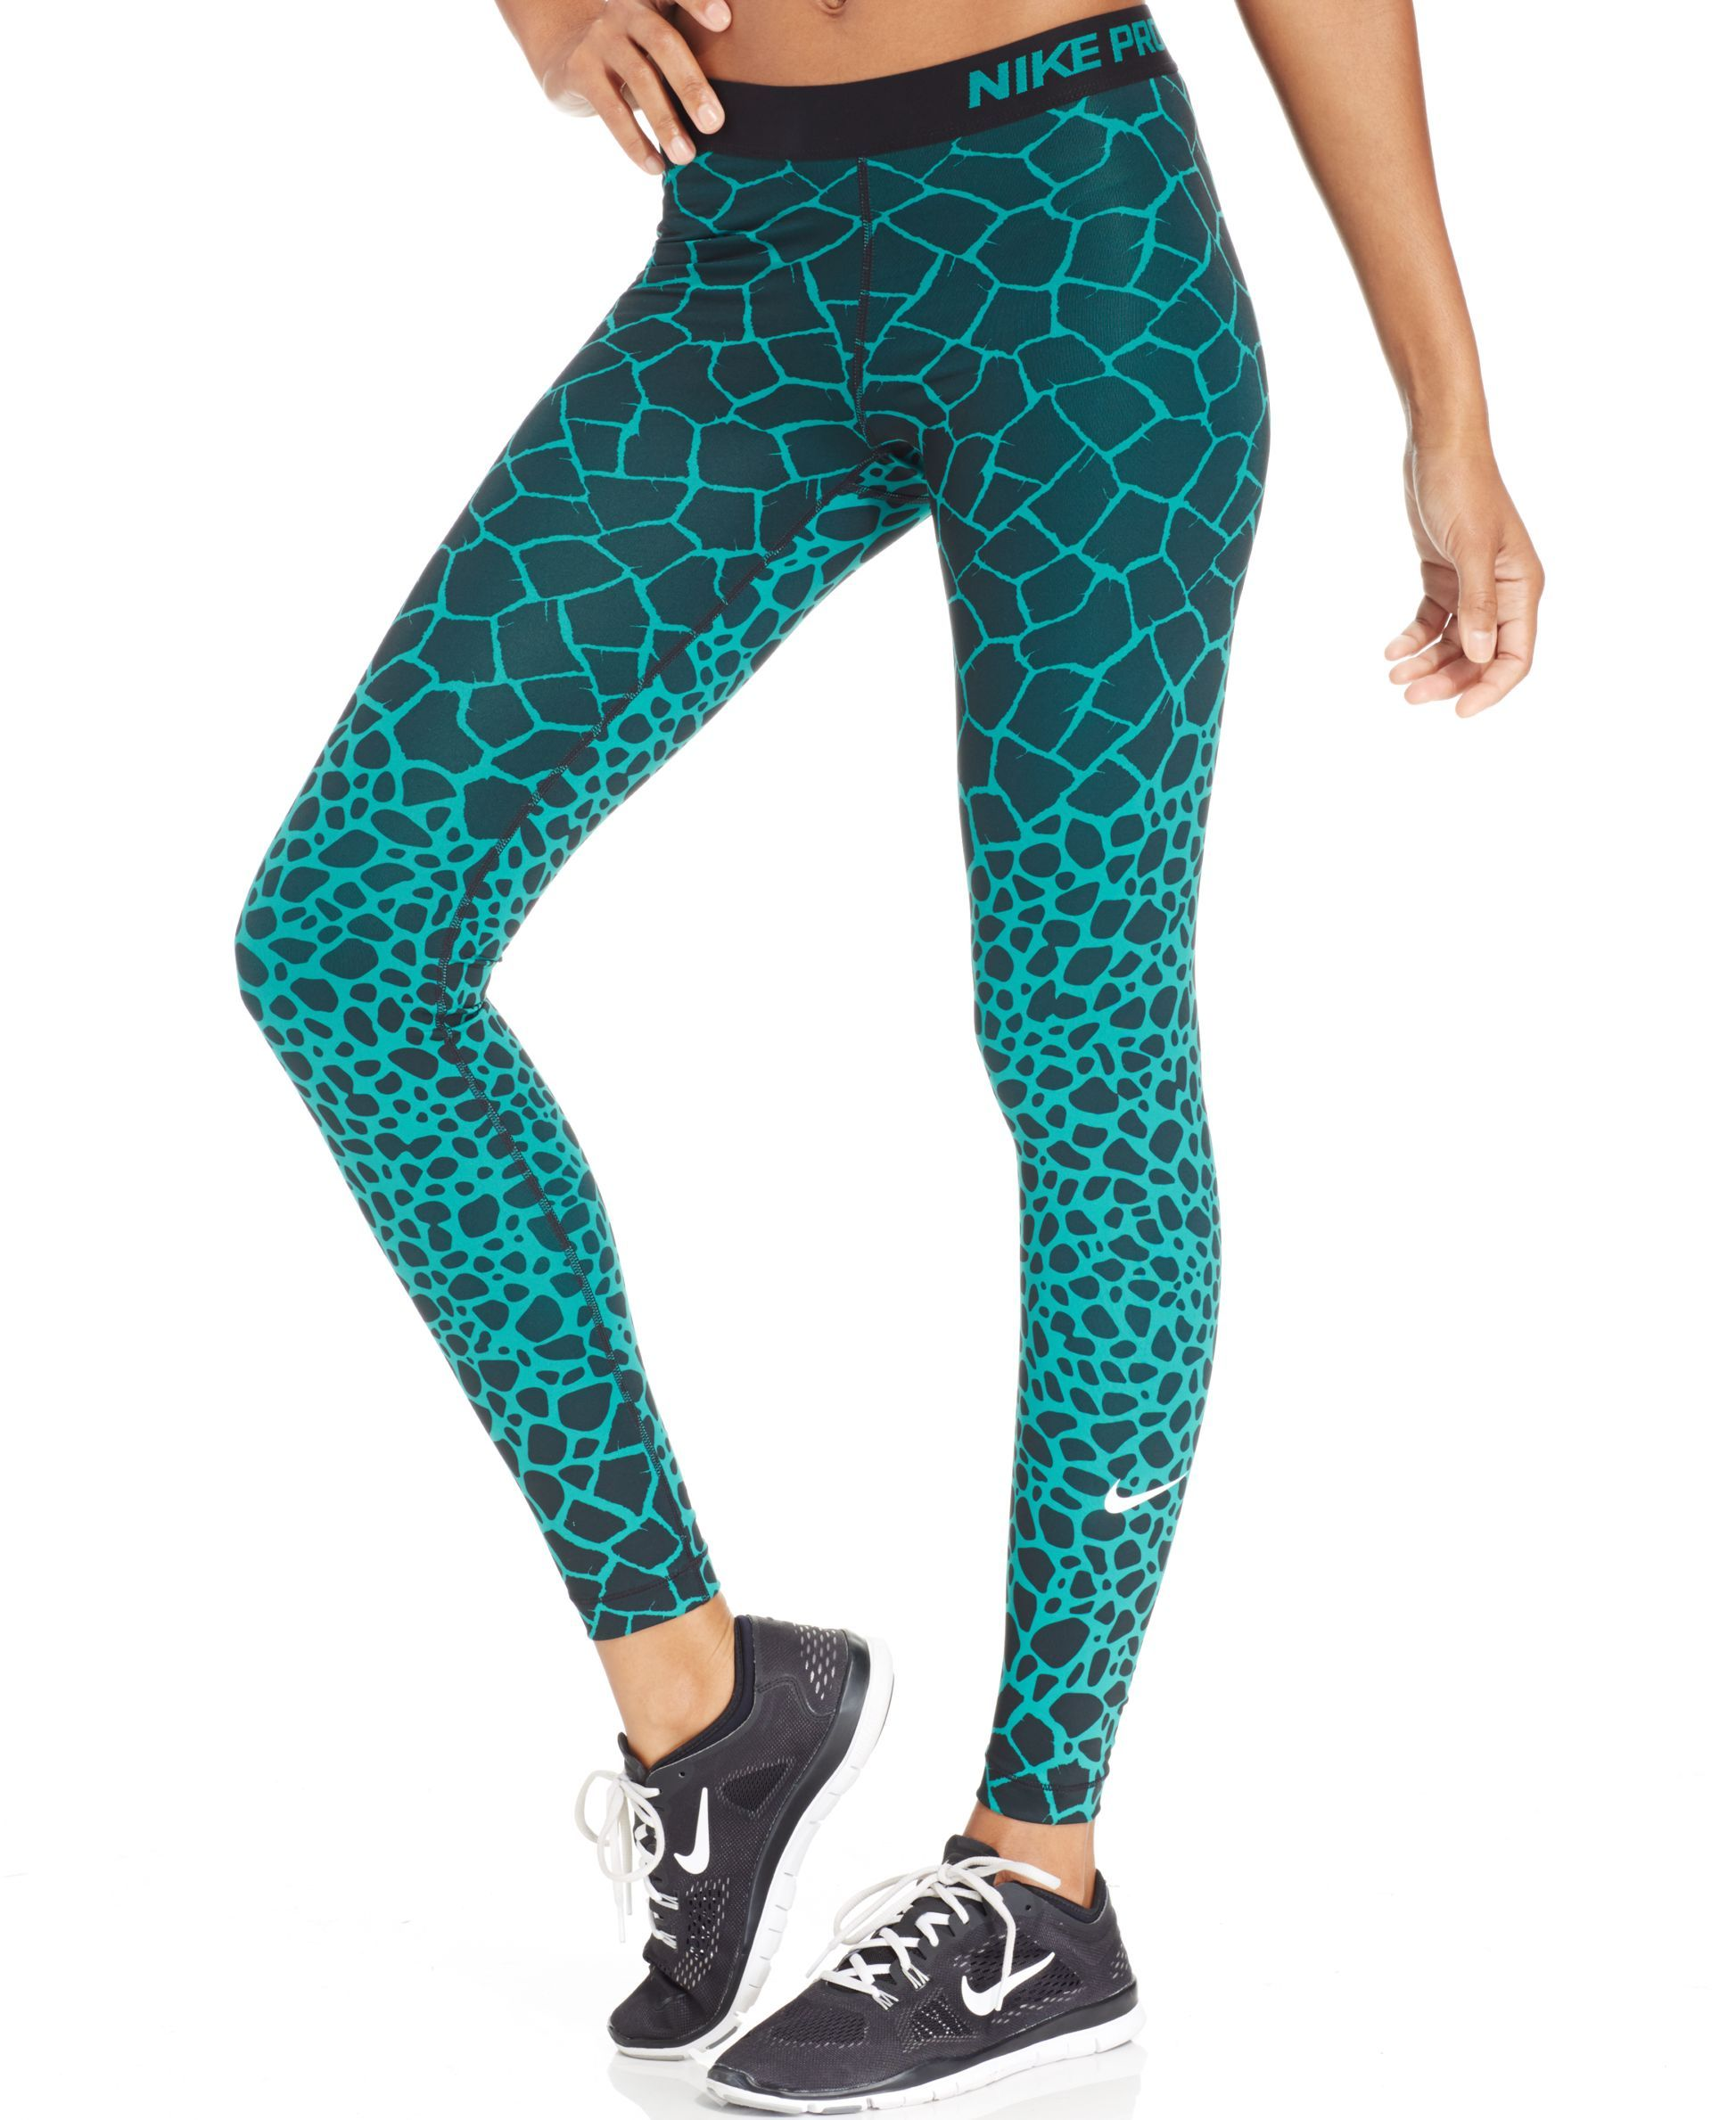 df538e6974f Nike Pro Engineered Dri-FIT Giraffe-Print Leggings - Pants   Capris - Women  - Macy s